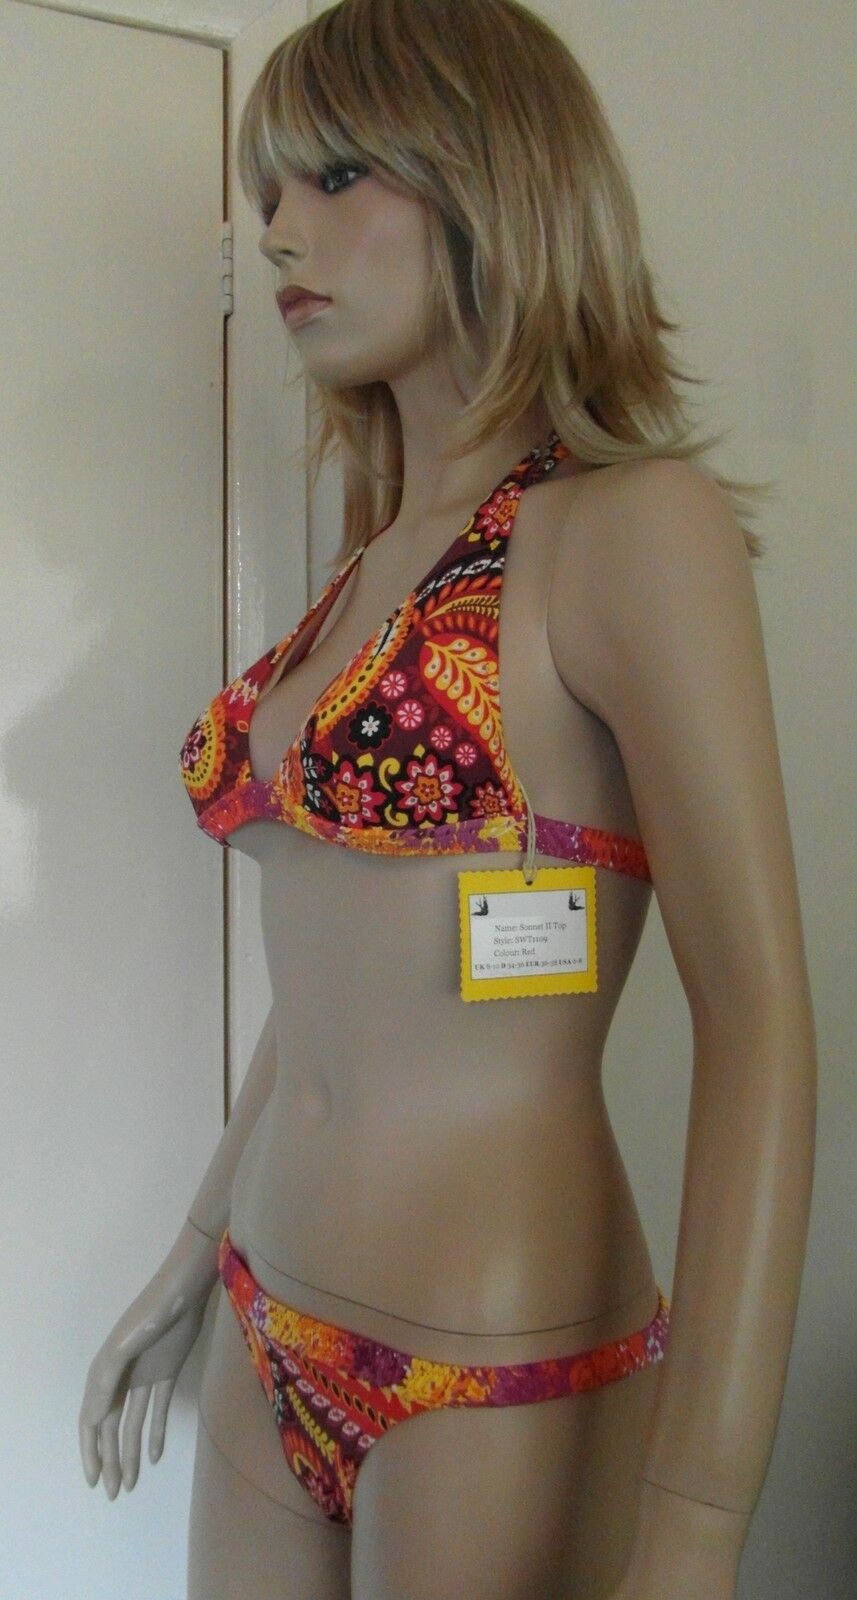 Paolita Designer Bikini Set Printed Top & Briefs Ideal Present   BNWT - RRP